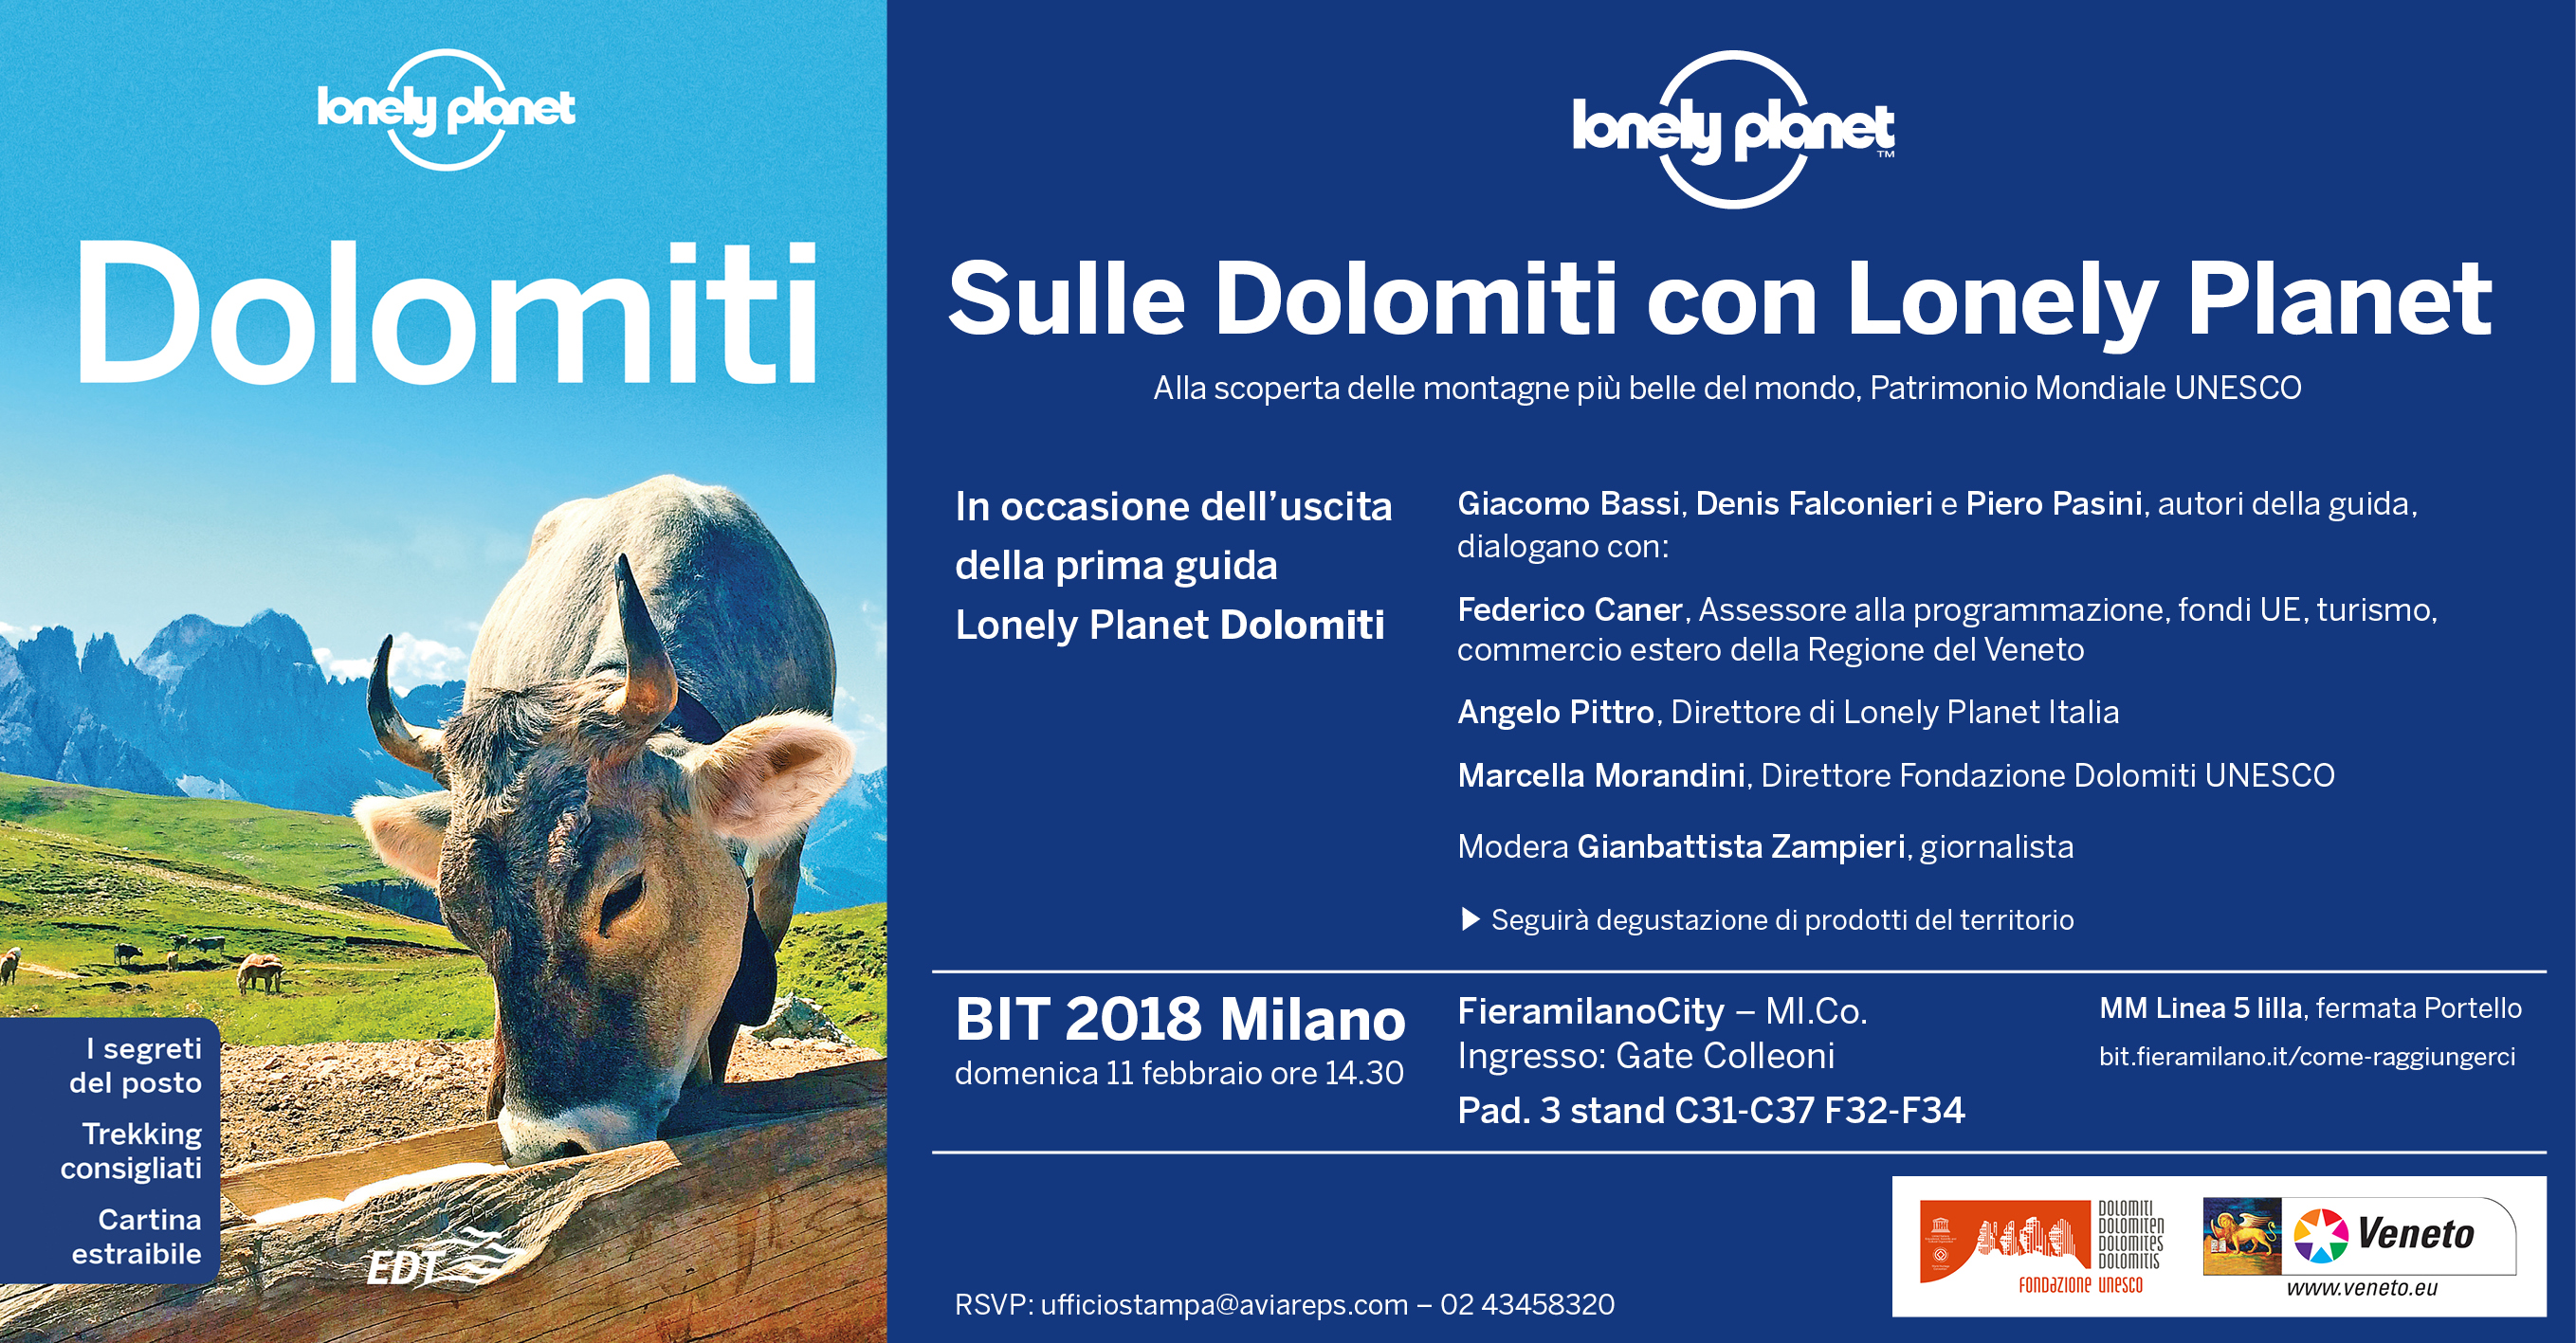 lonely planet dolomiti bit milano